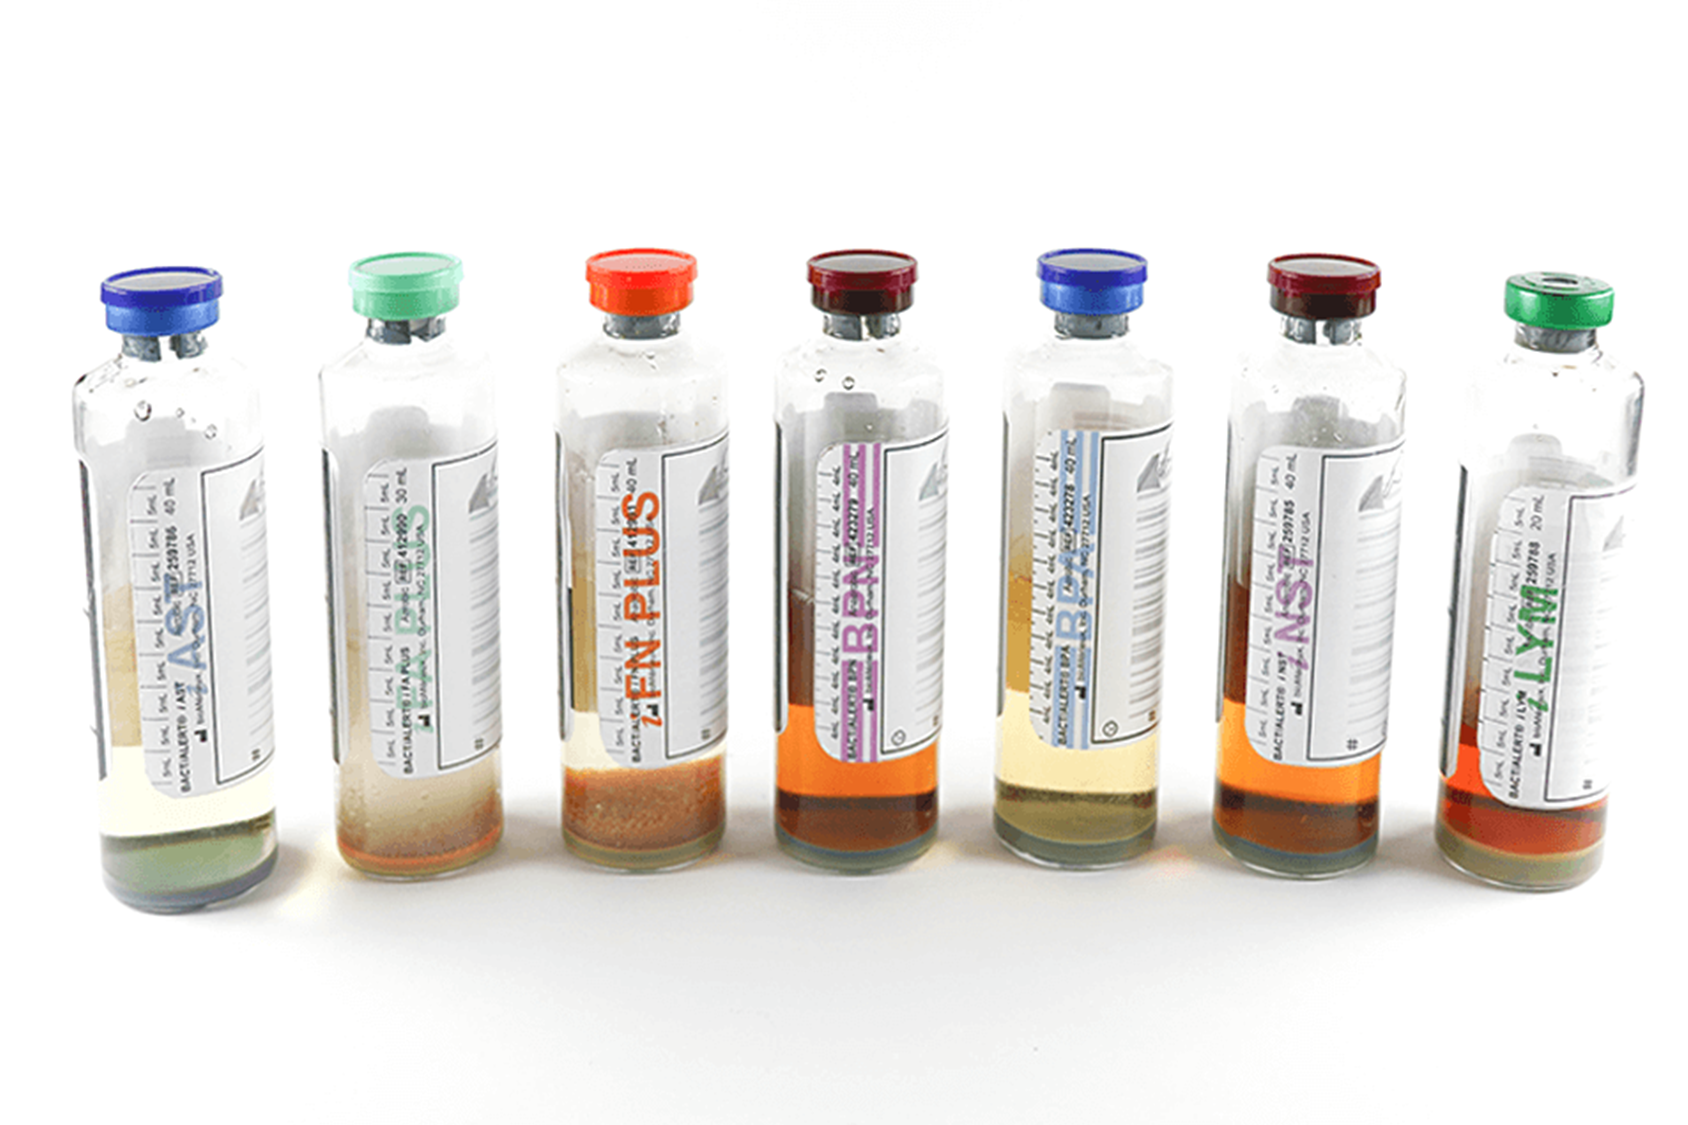 Biomerieux - BacT/Alert Culture MediaREAGENT, CAL, QCPLASTIC BOTTLE MEDIA FOR BLOOD CULTURE MICROBIAL DETECTIONProduct Page | More